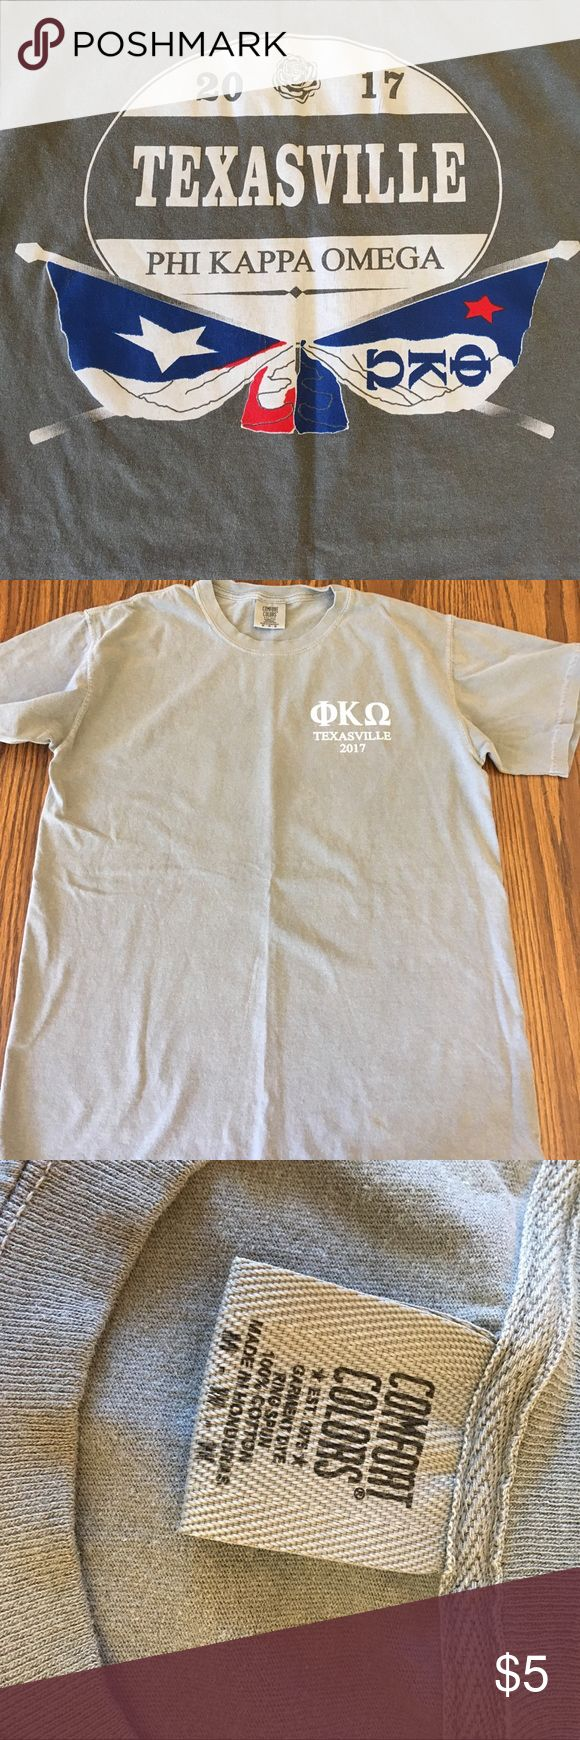 "Phi Kappa Omega fraternity t-shirt, size M, gray Gray Texas t-shirt ""Texasville, Phi Kappa Omega"" fraternity, men's size medium. Shirts Tees - Short Sleeve"